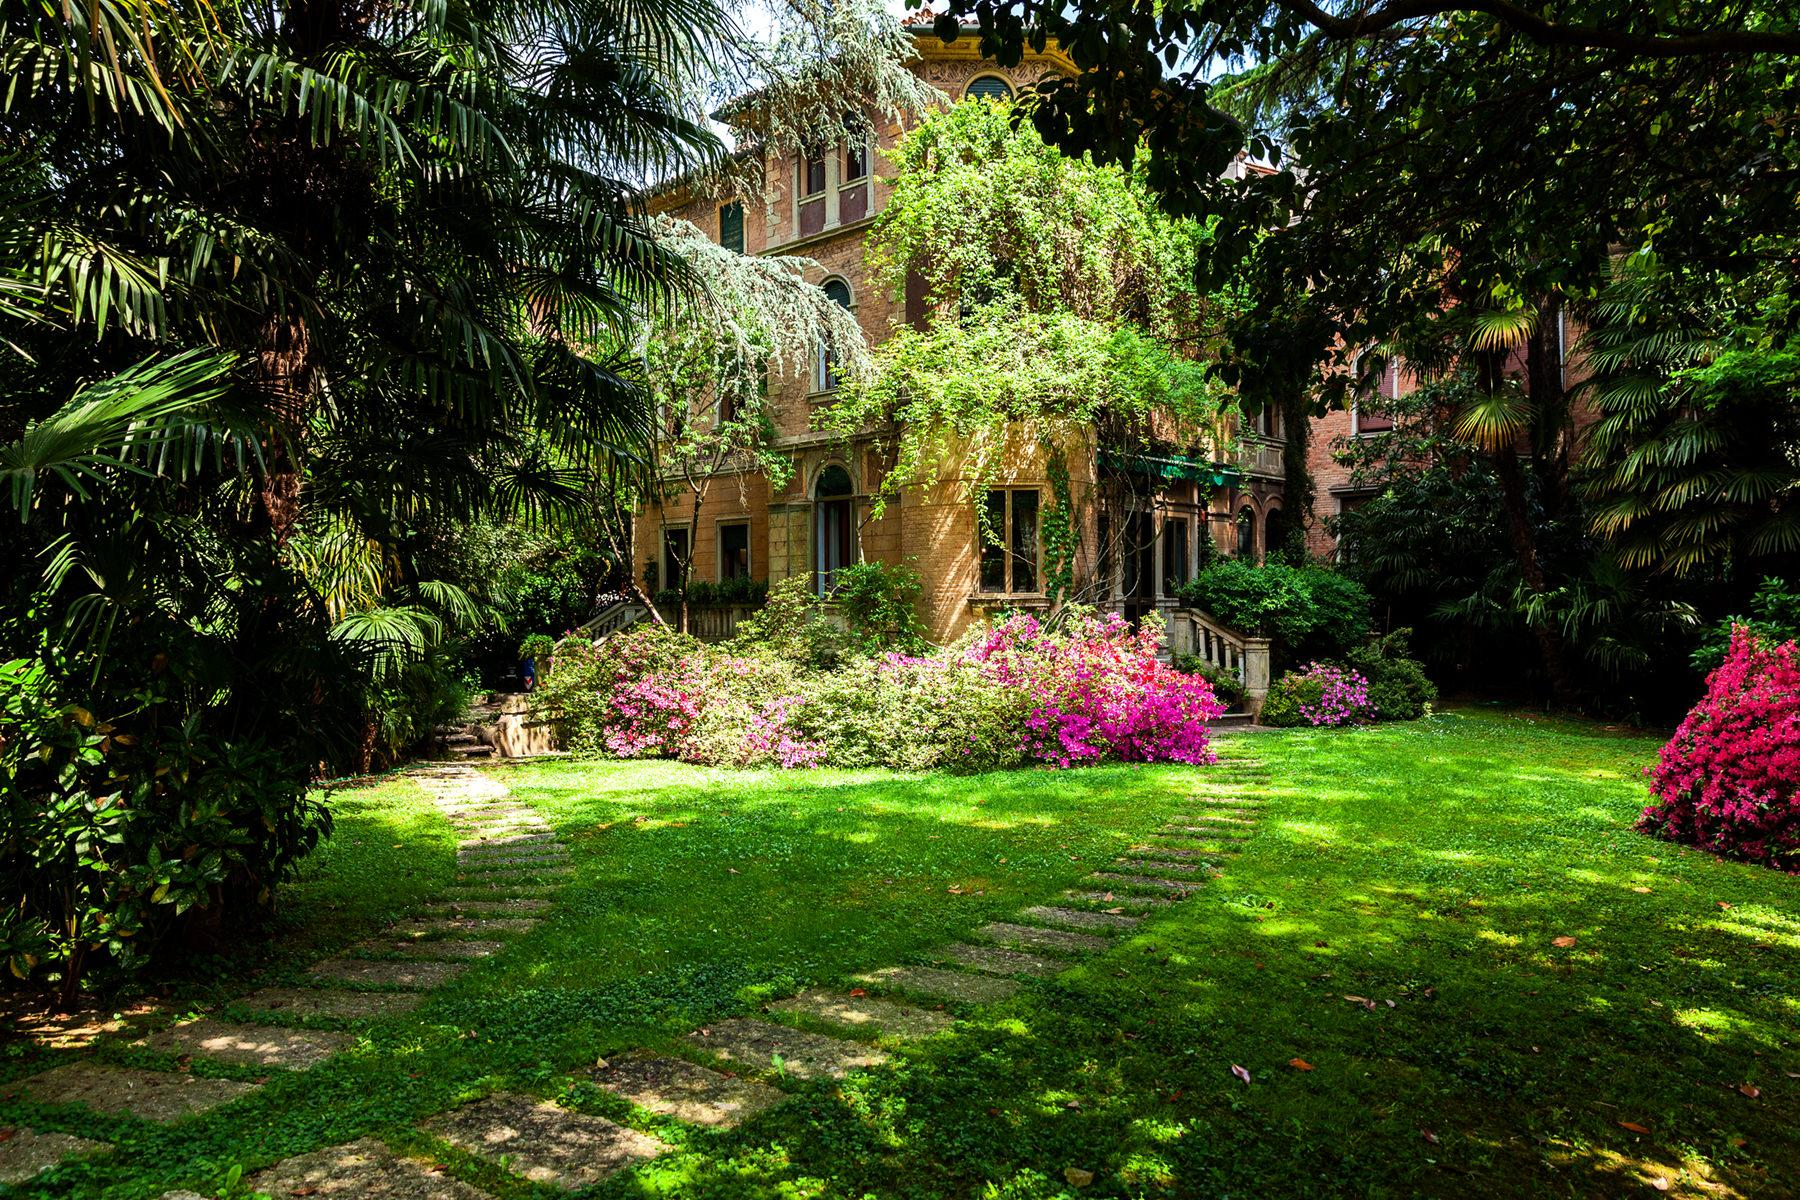 Wonderful Art Nouveau villa in the heart of Treviso - 2